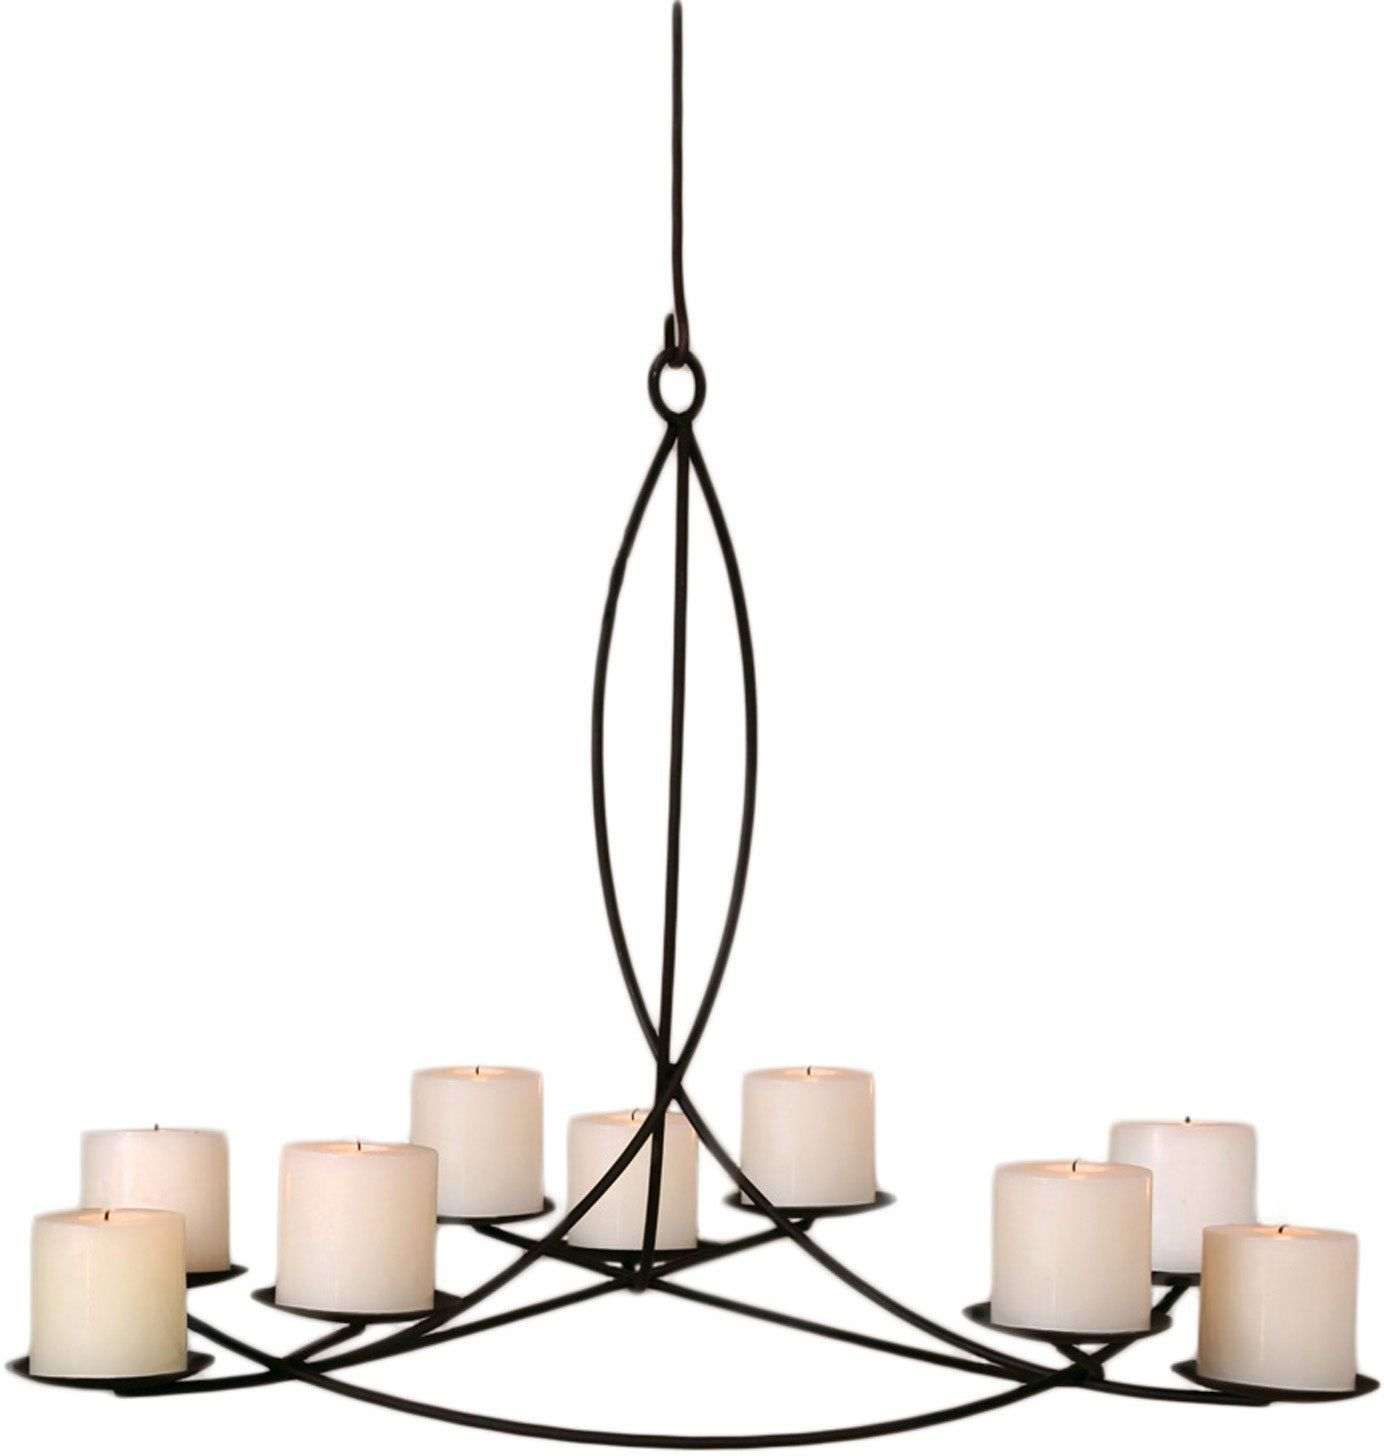 Alluring Lighting Non Electric Chandelier Lighting for Your